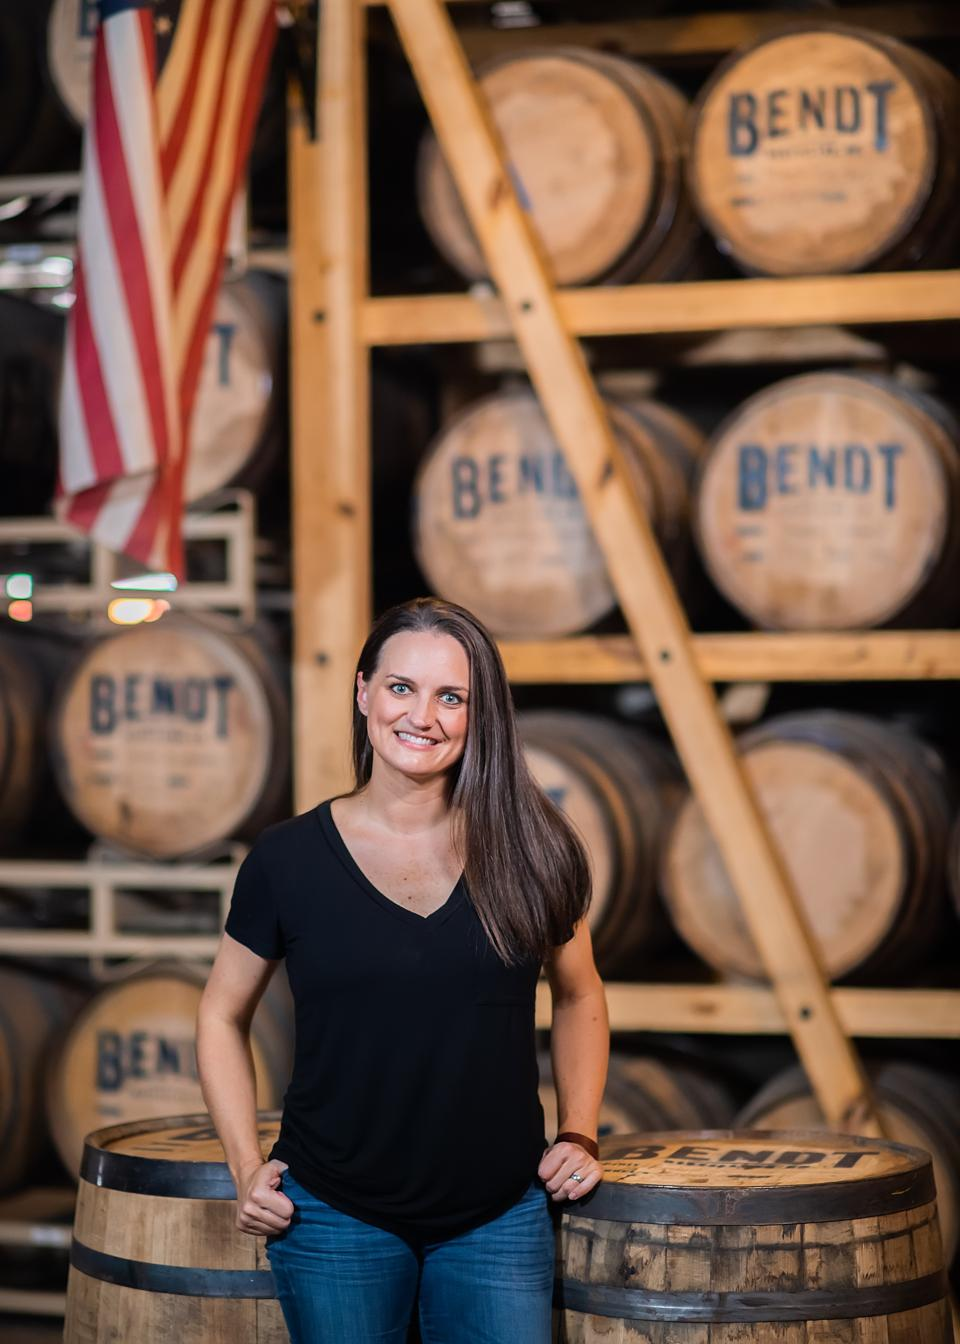 Natasha DeHart, co-owner of BENDT Distilling Co., is making hand sanitizer to donate to Dallas County hospitals and first responders.